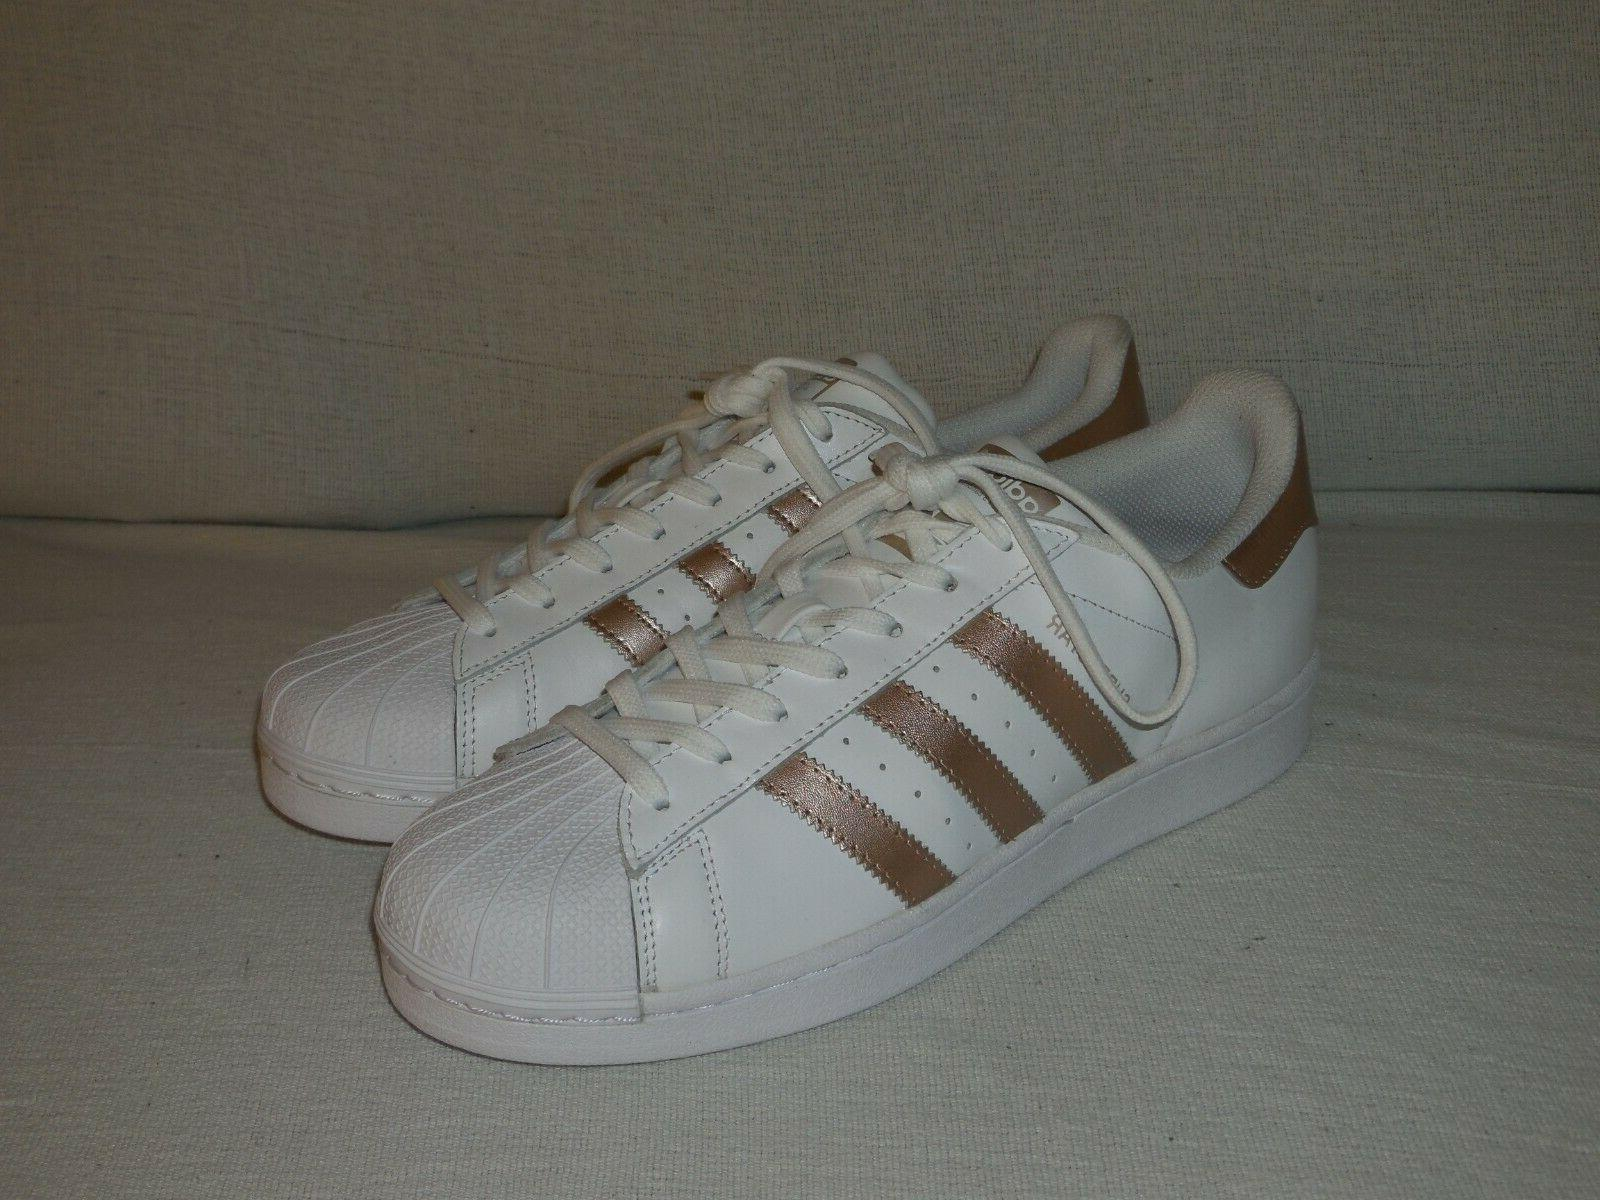 Adidas Originals Superstar W White Rose Gold-WOMEN'S SIZE 9